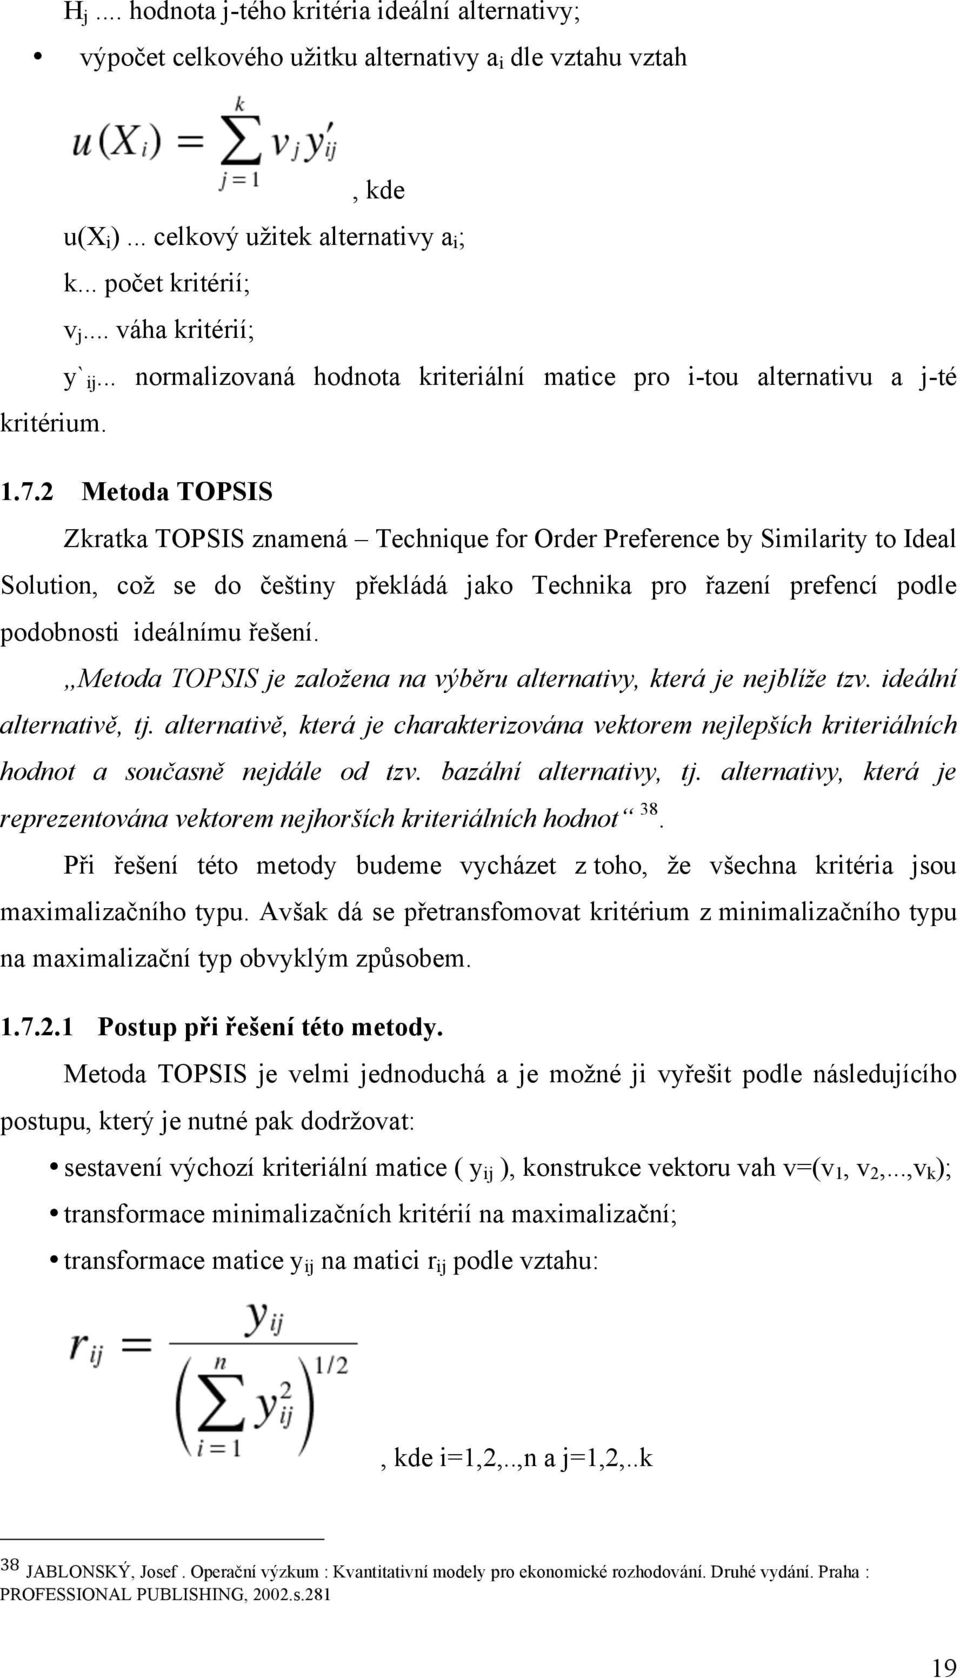 2 Metoda TOPSIS Zkratka TOPSIS znamená Technique for Order Preference by Similarity to Ideal Solution, což se do češtiny překládá jako Technika pro řazení prefencí podle podobnosti ideálnímu řešení.